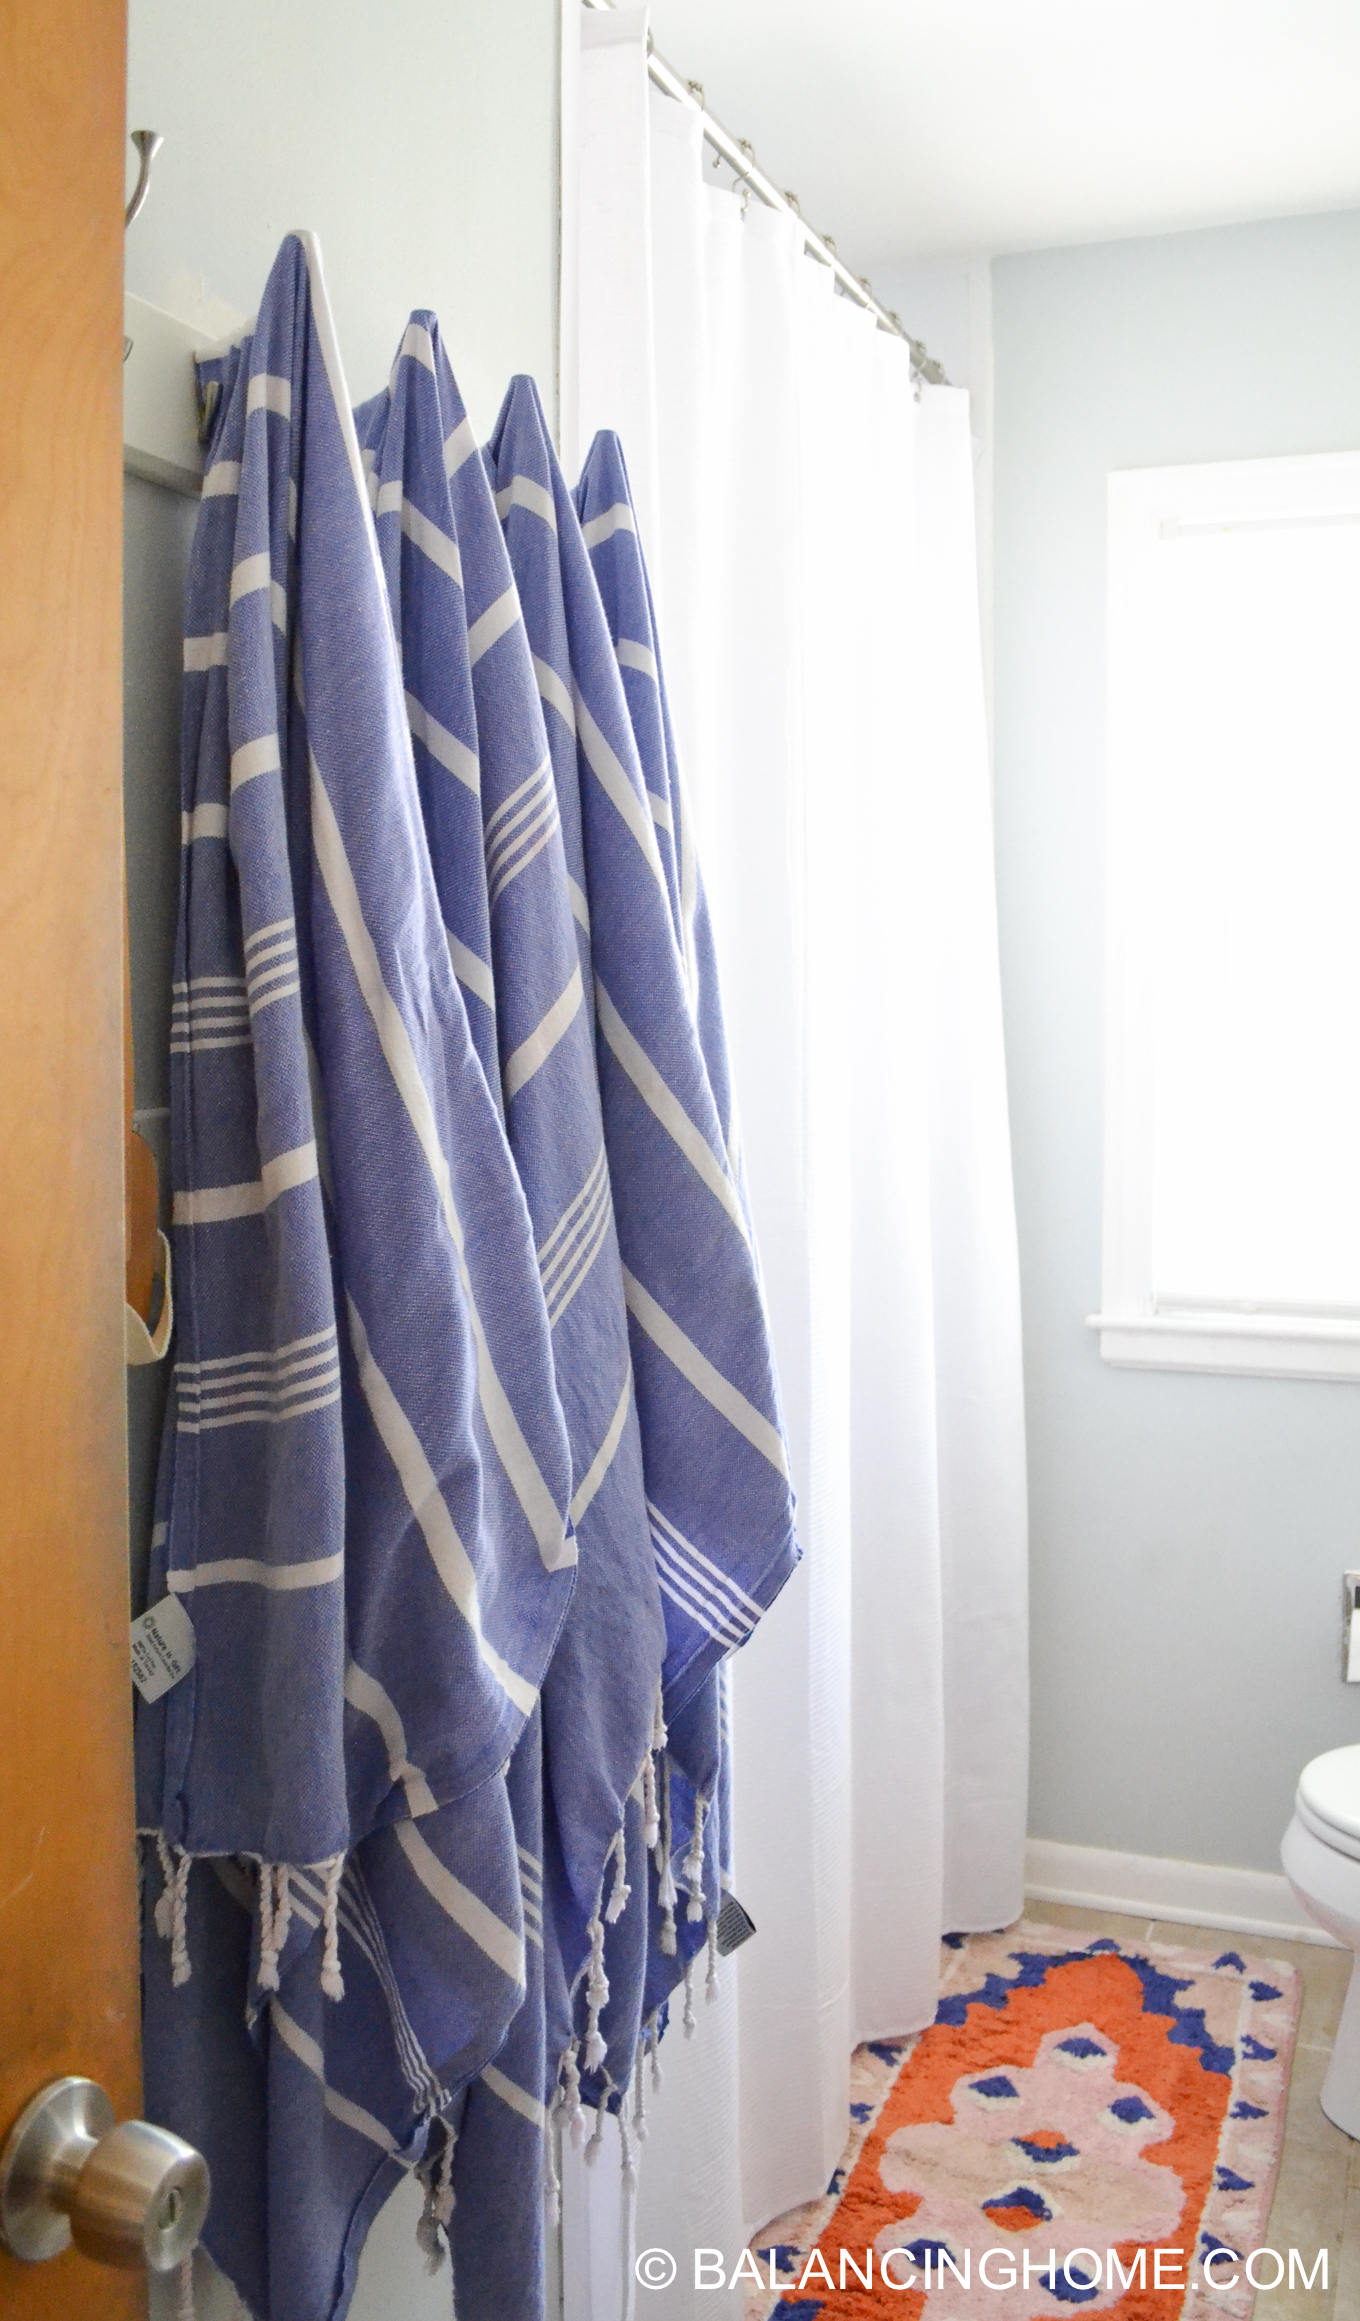 small bathroom ideas - colorful bath mat and turkish towels